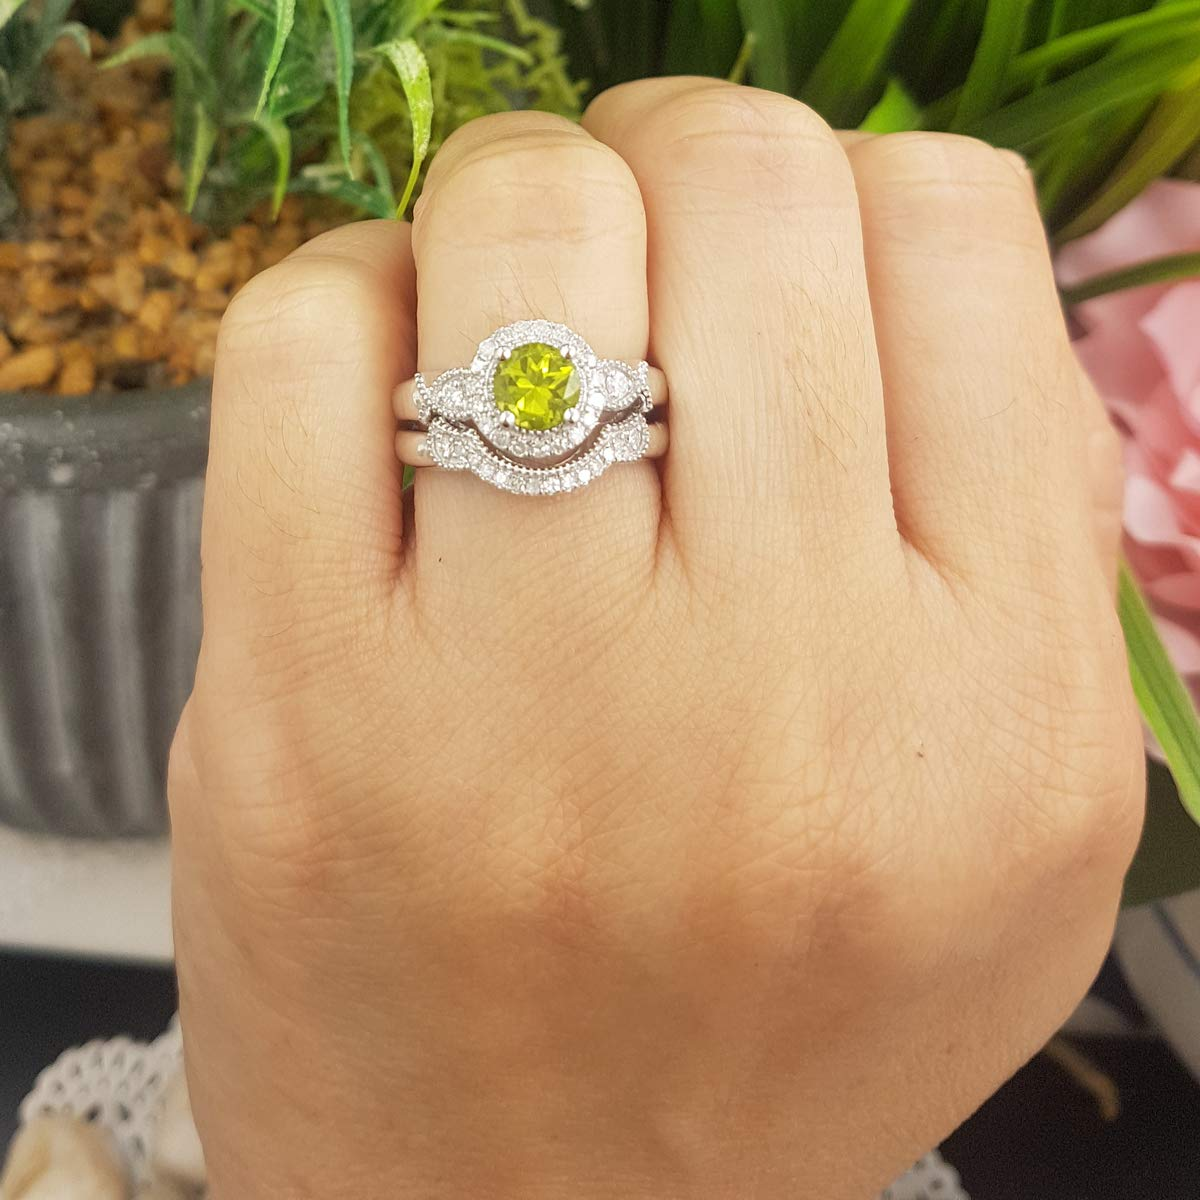 Dazzlingrock Collection 10K 6 MM Round Peridot & White Diamond Ladies Halo Engagement Ring Set, White Gold, Size 8 by Dazzlingrock Collection (Image #4)